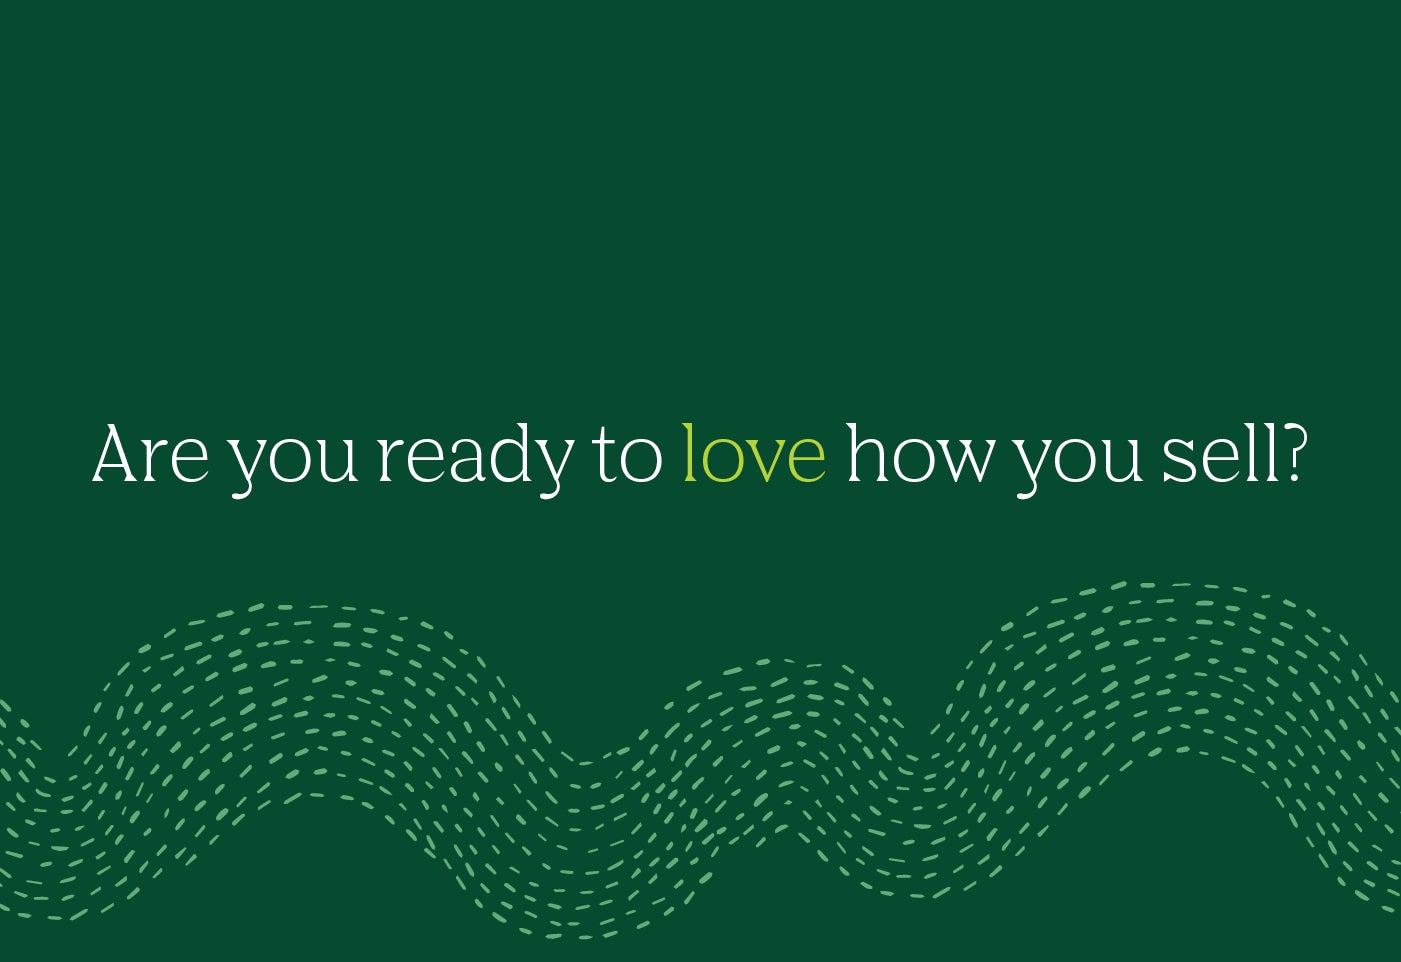 Are you ready to love how you sell?